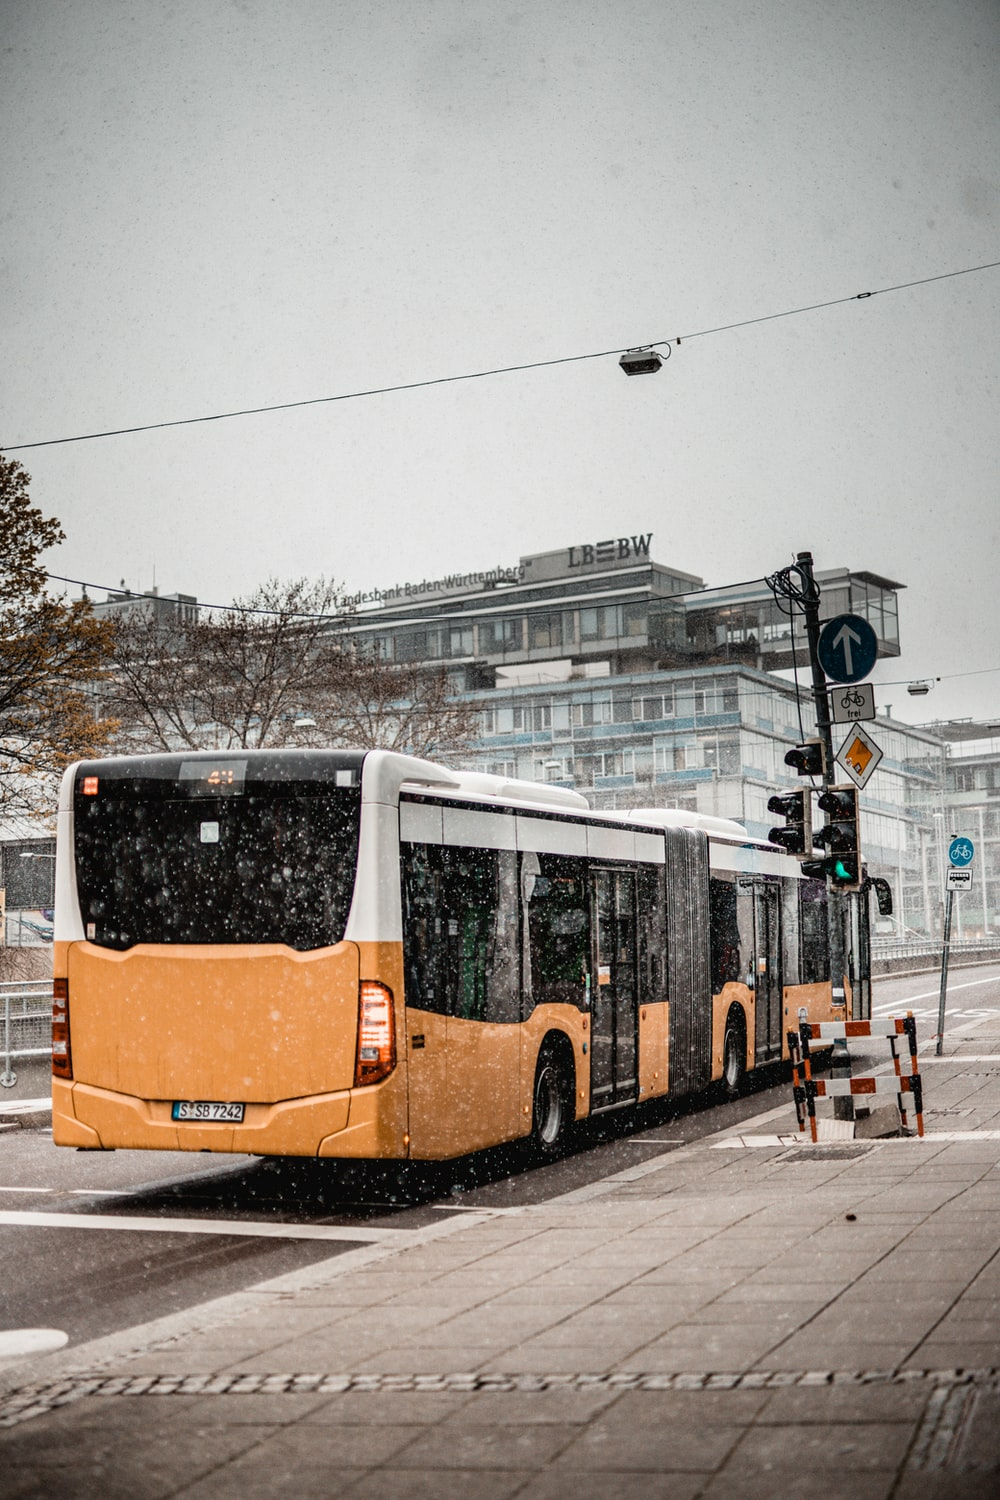 orange and white bus on road during daytime